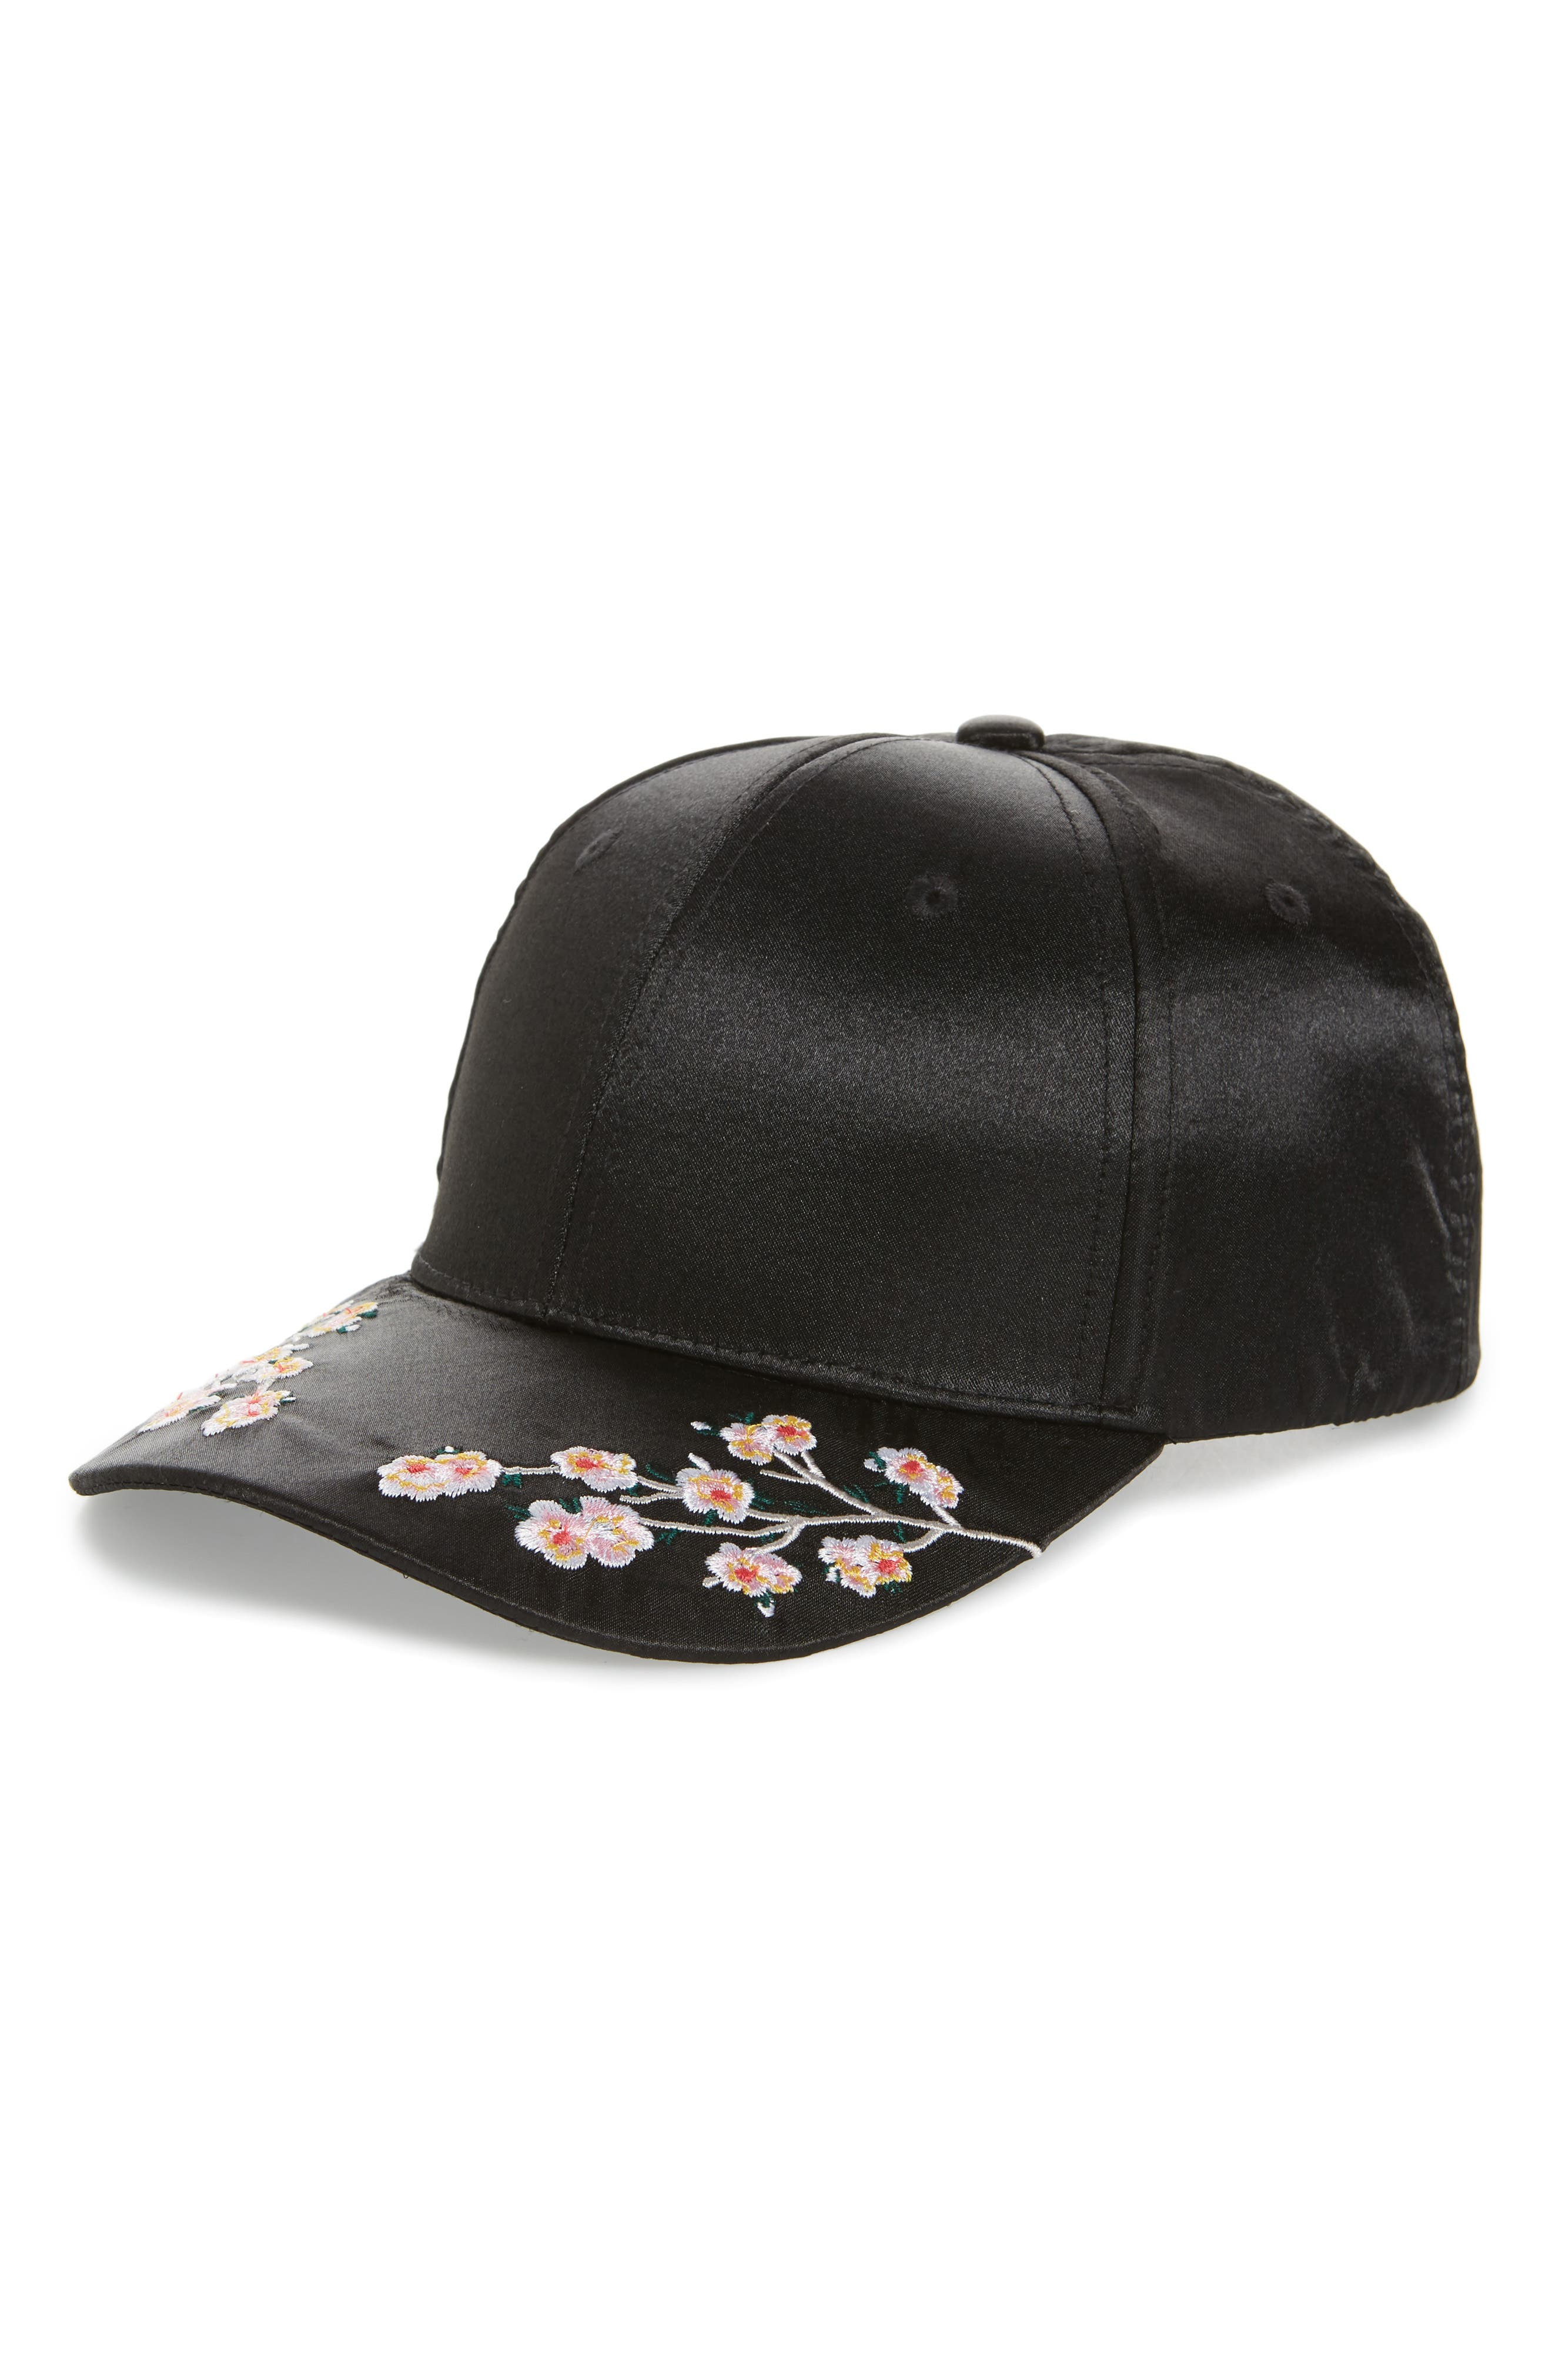 Embroidered Satin Adjustable Ball Cap,                             Main thumbnail 1, color,                             Black